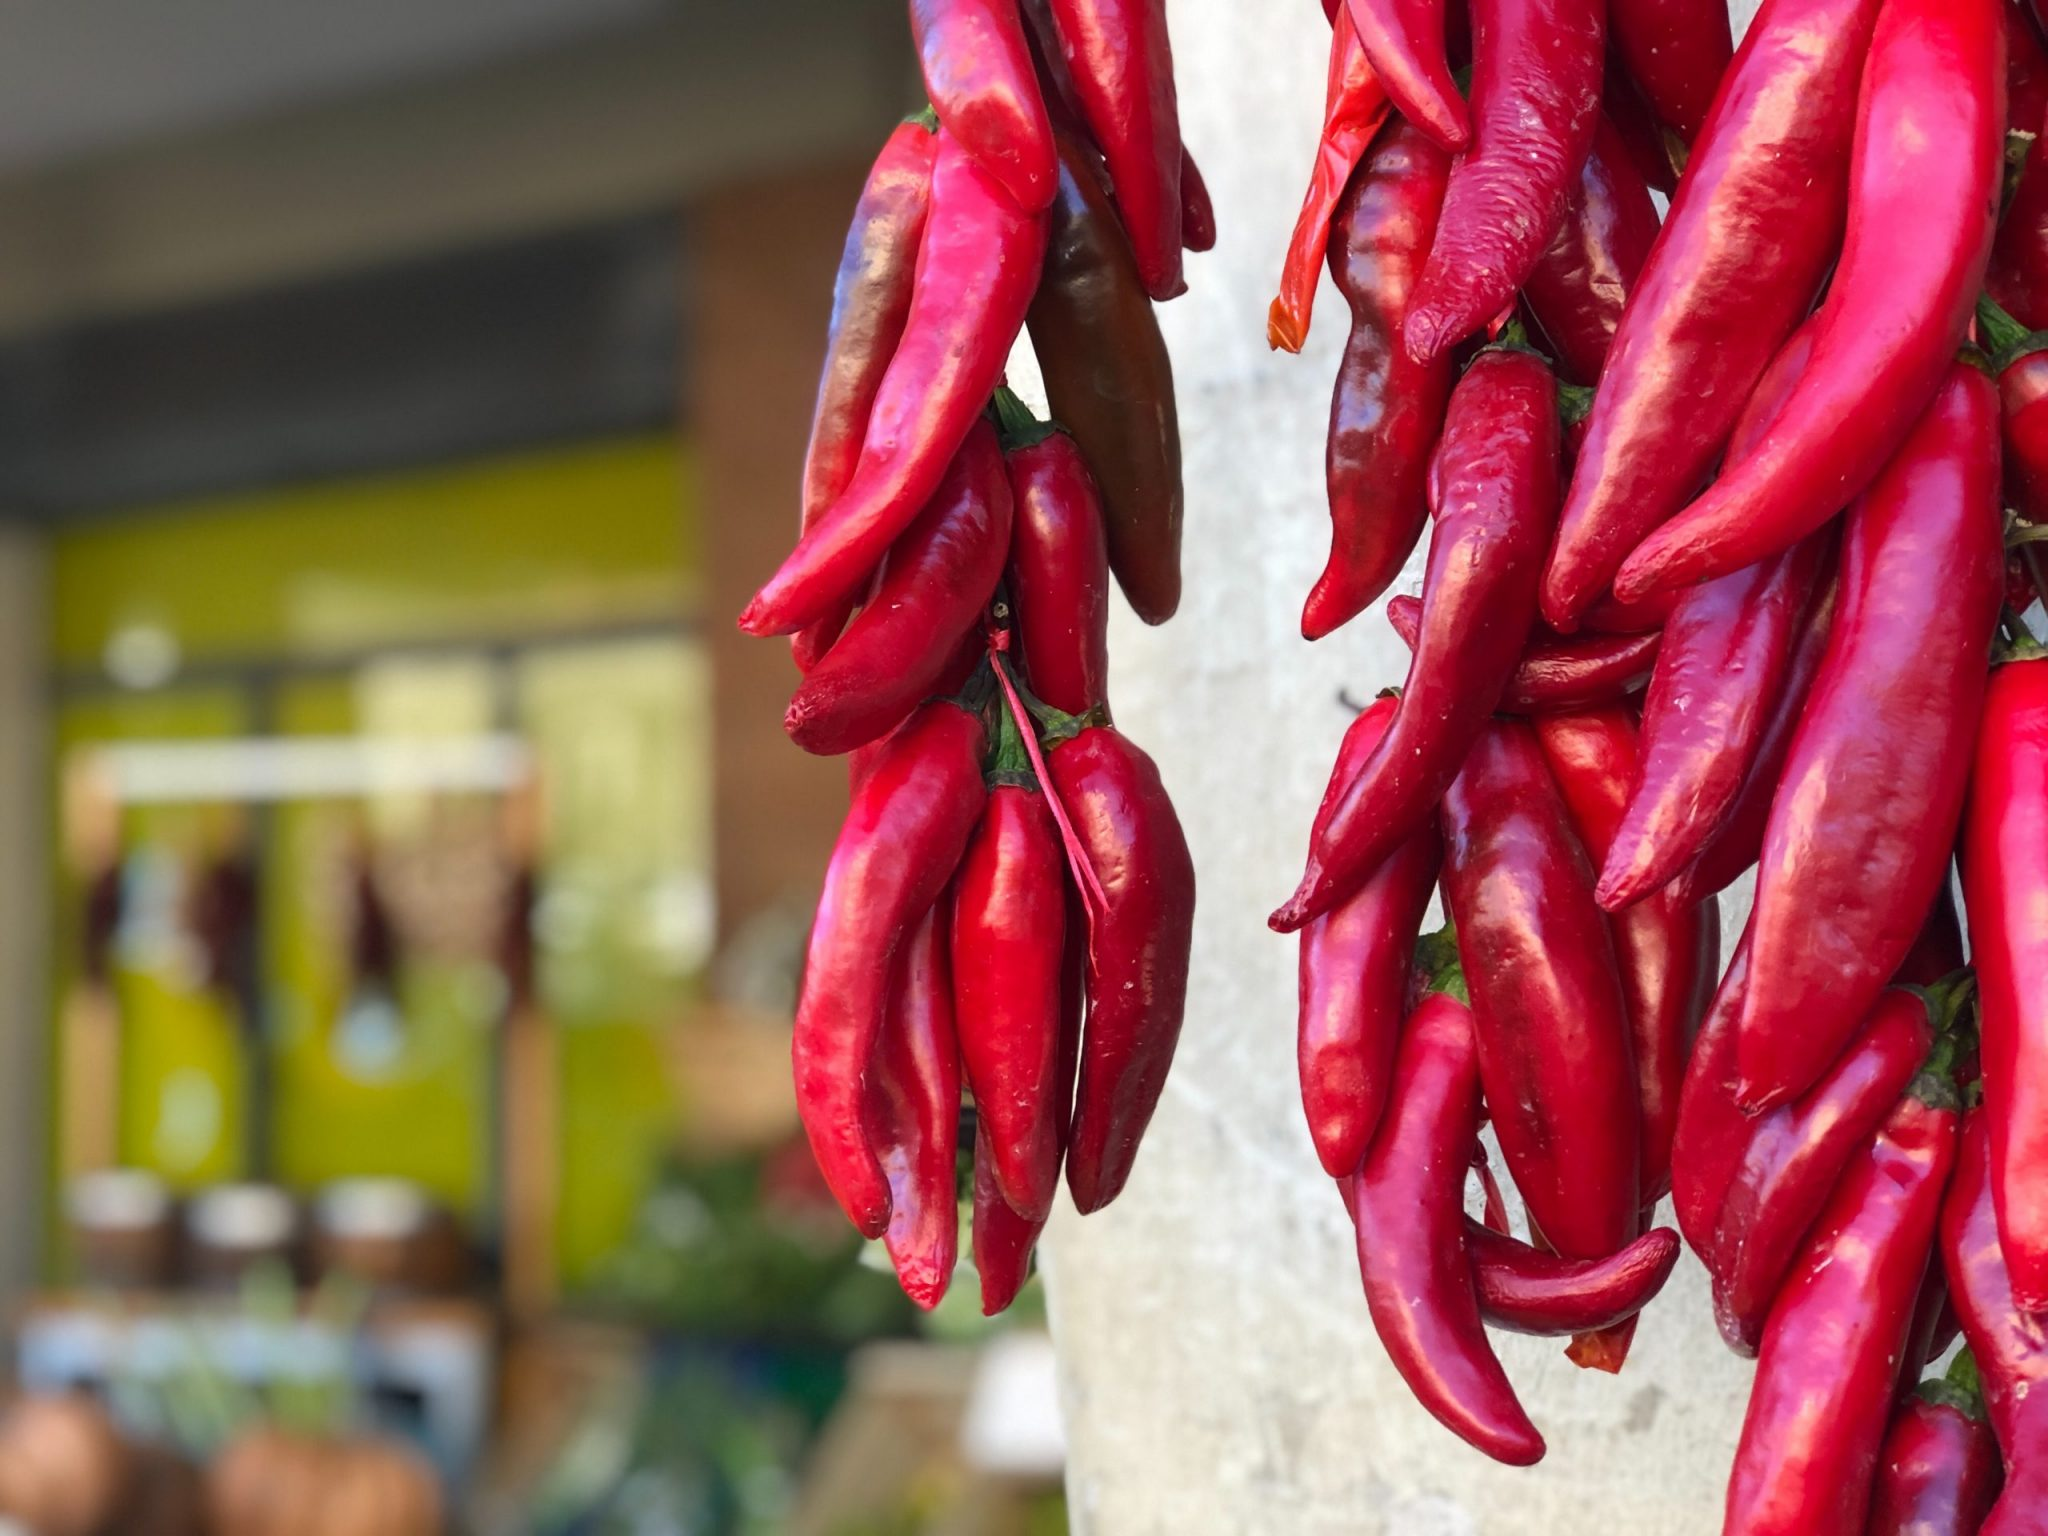 A photo of chilis from Sicily